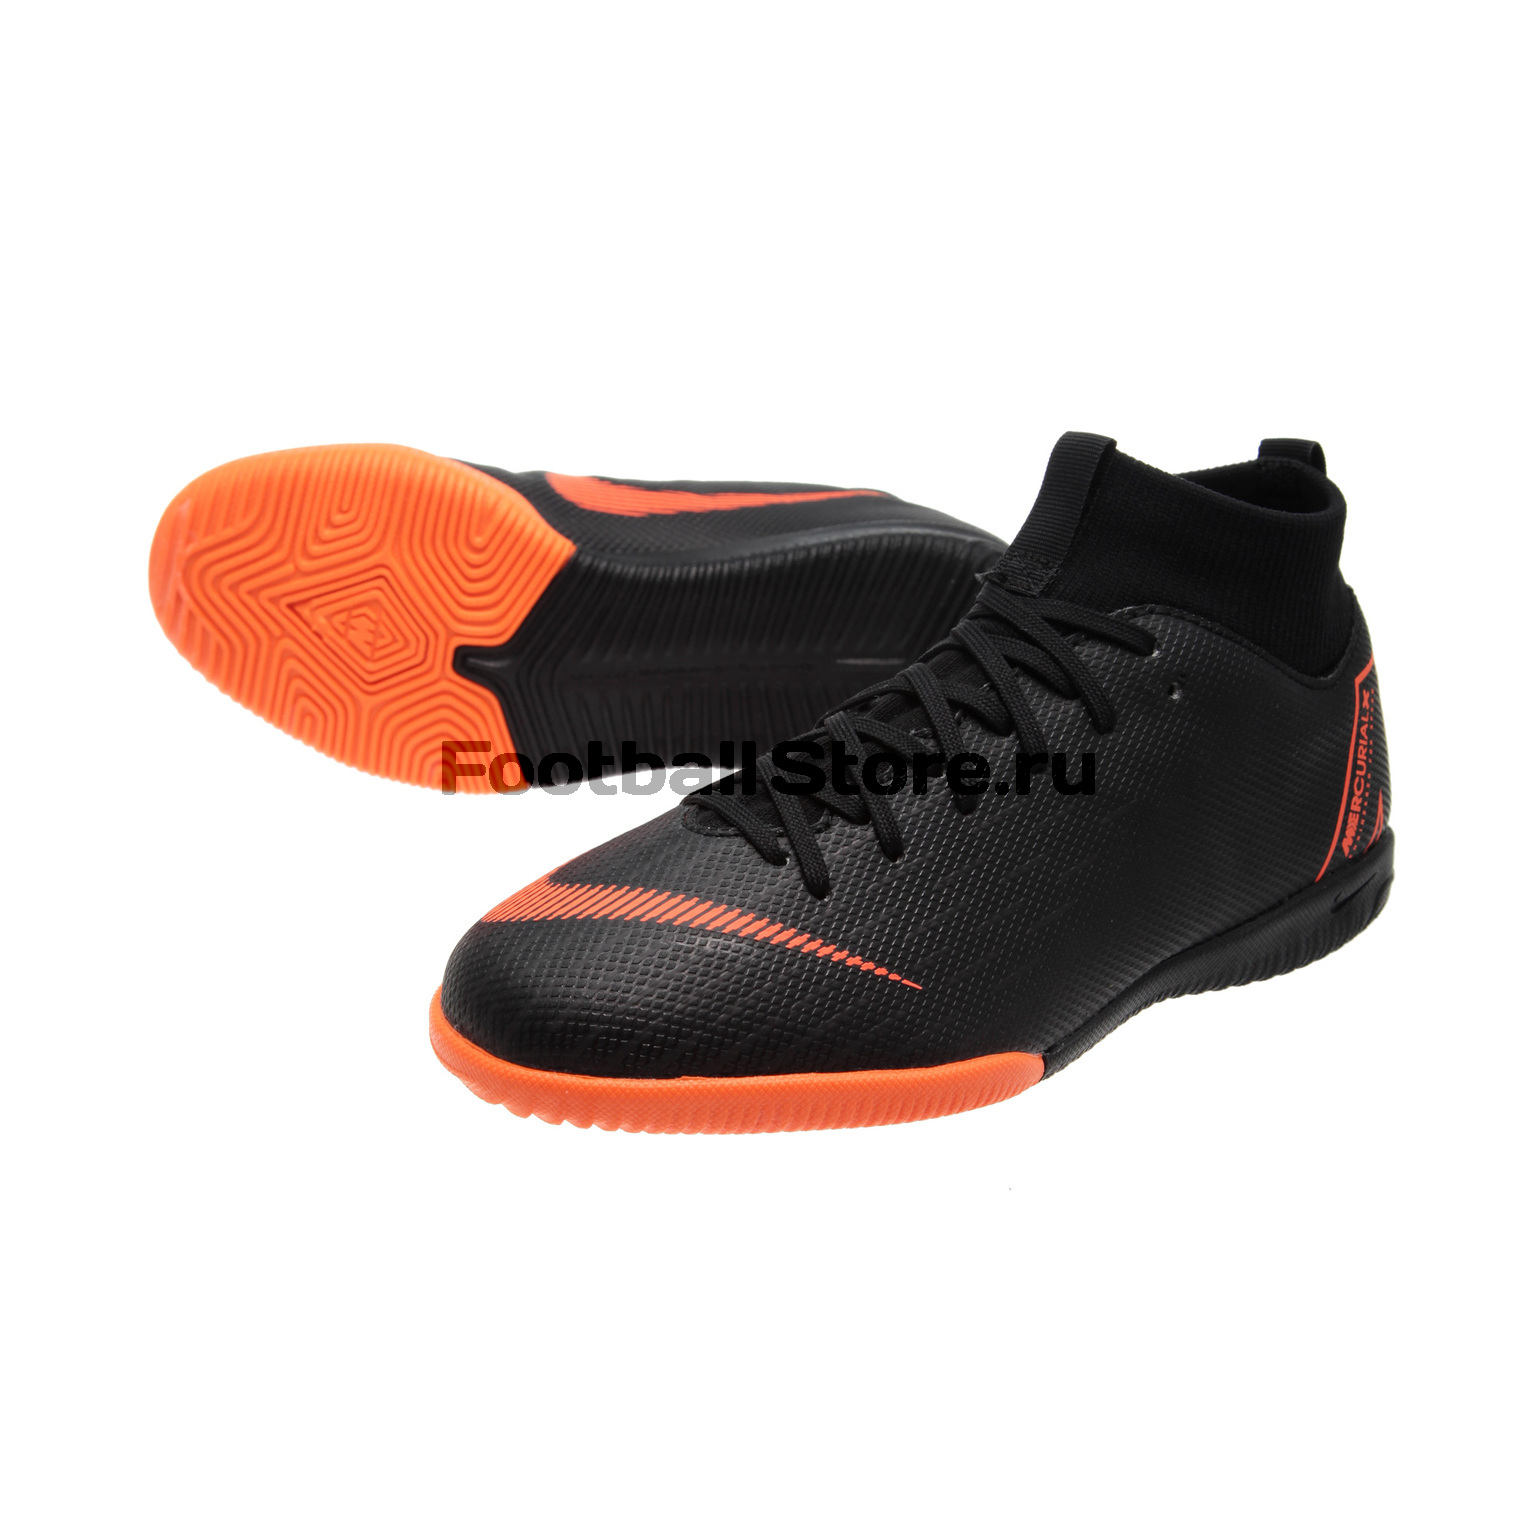 Обувь для зала Nike JR SuperflyX 6 Academy GS IC AH7343-081 бутсы nike superfly academy gs cr7 jr fg mg aj3111 390